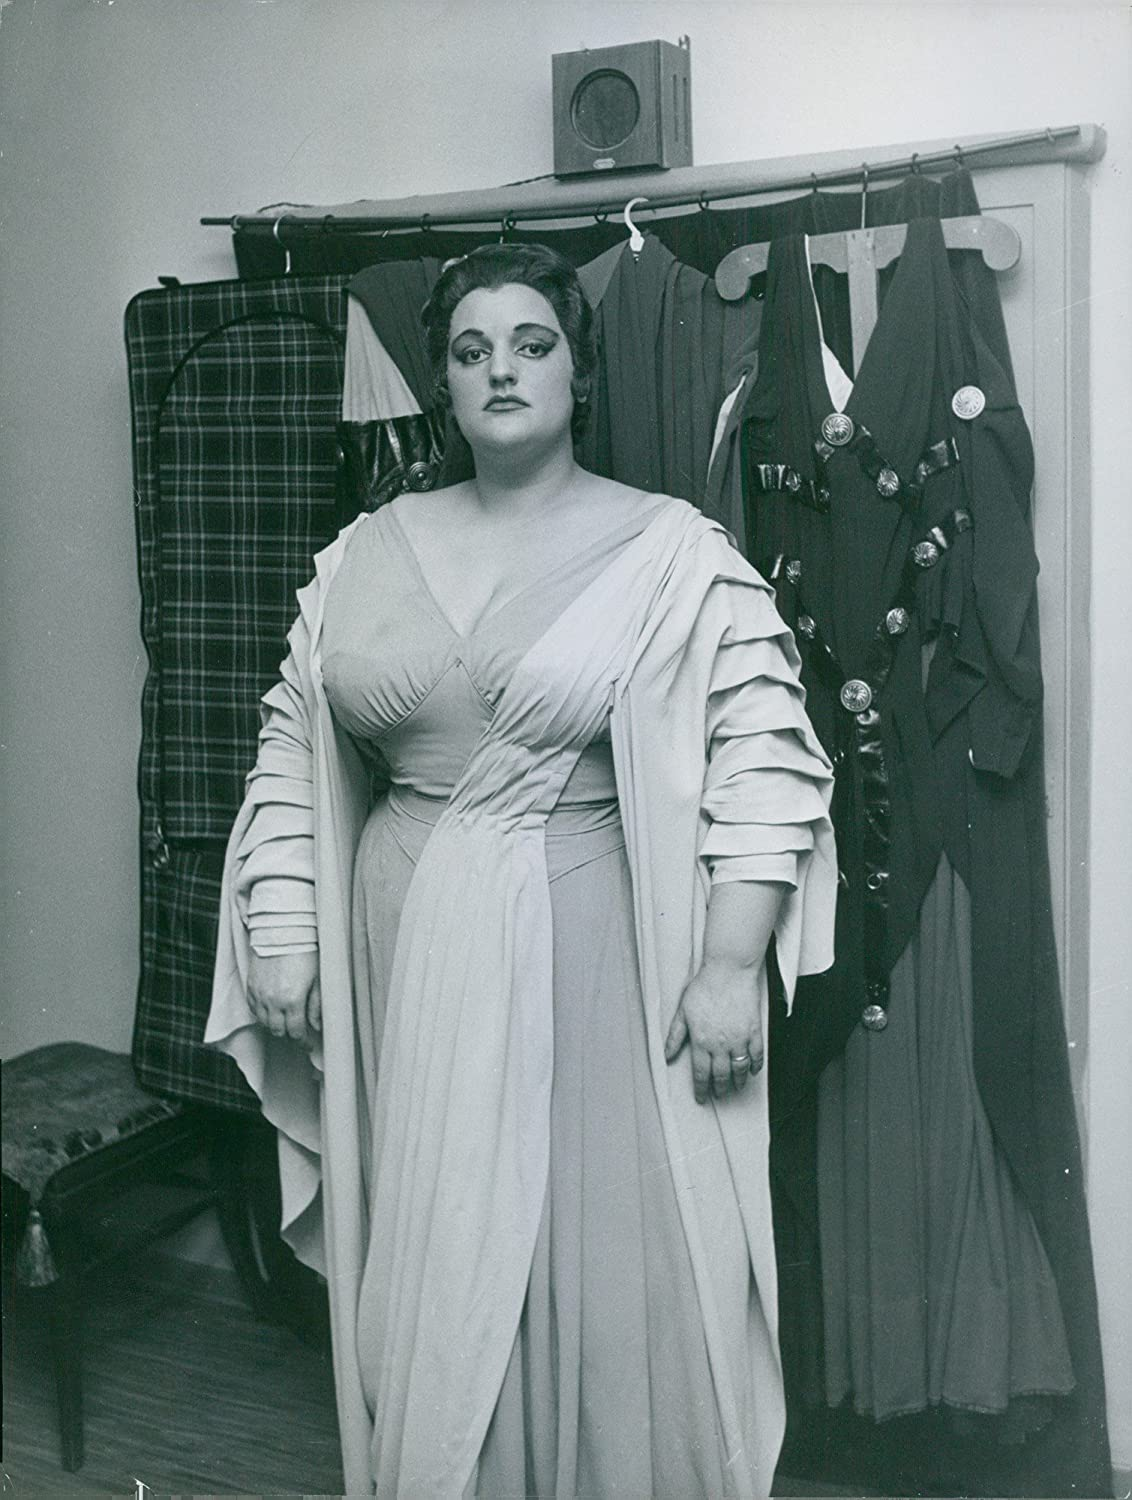 Amazon.com: Vintage photo of Anita Carquetti is wearing a long dress.:  Entertainment Collectibles